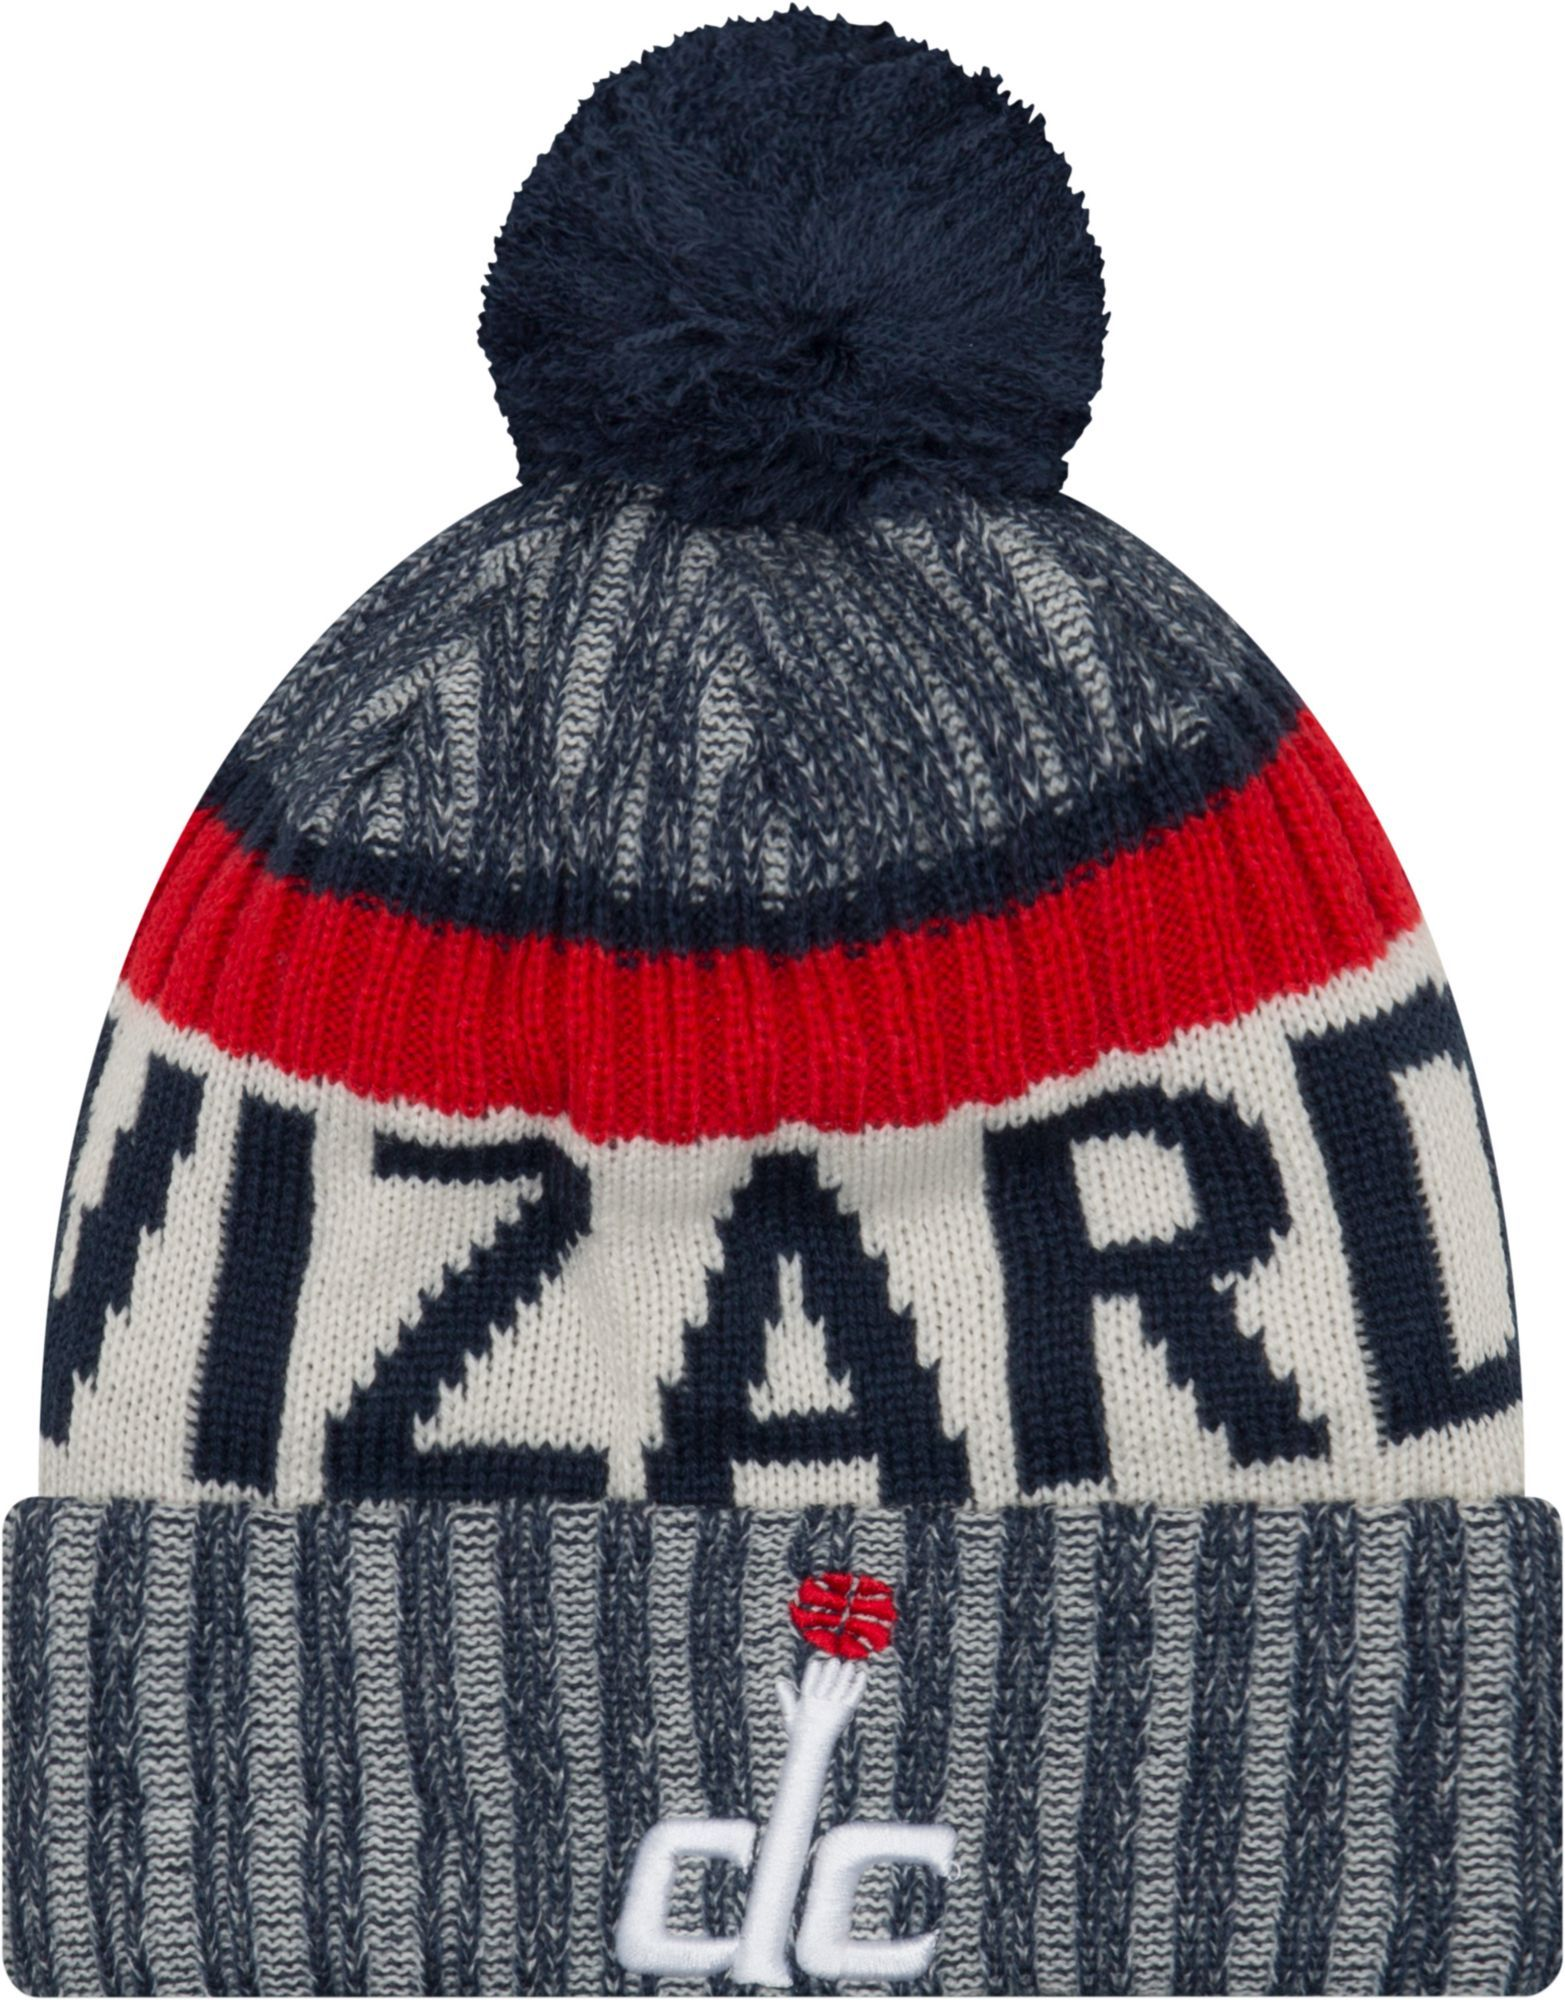 51c483c76 New Era Youth Washington Wizards Knit Hat